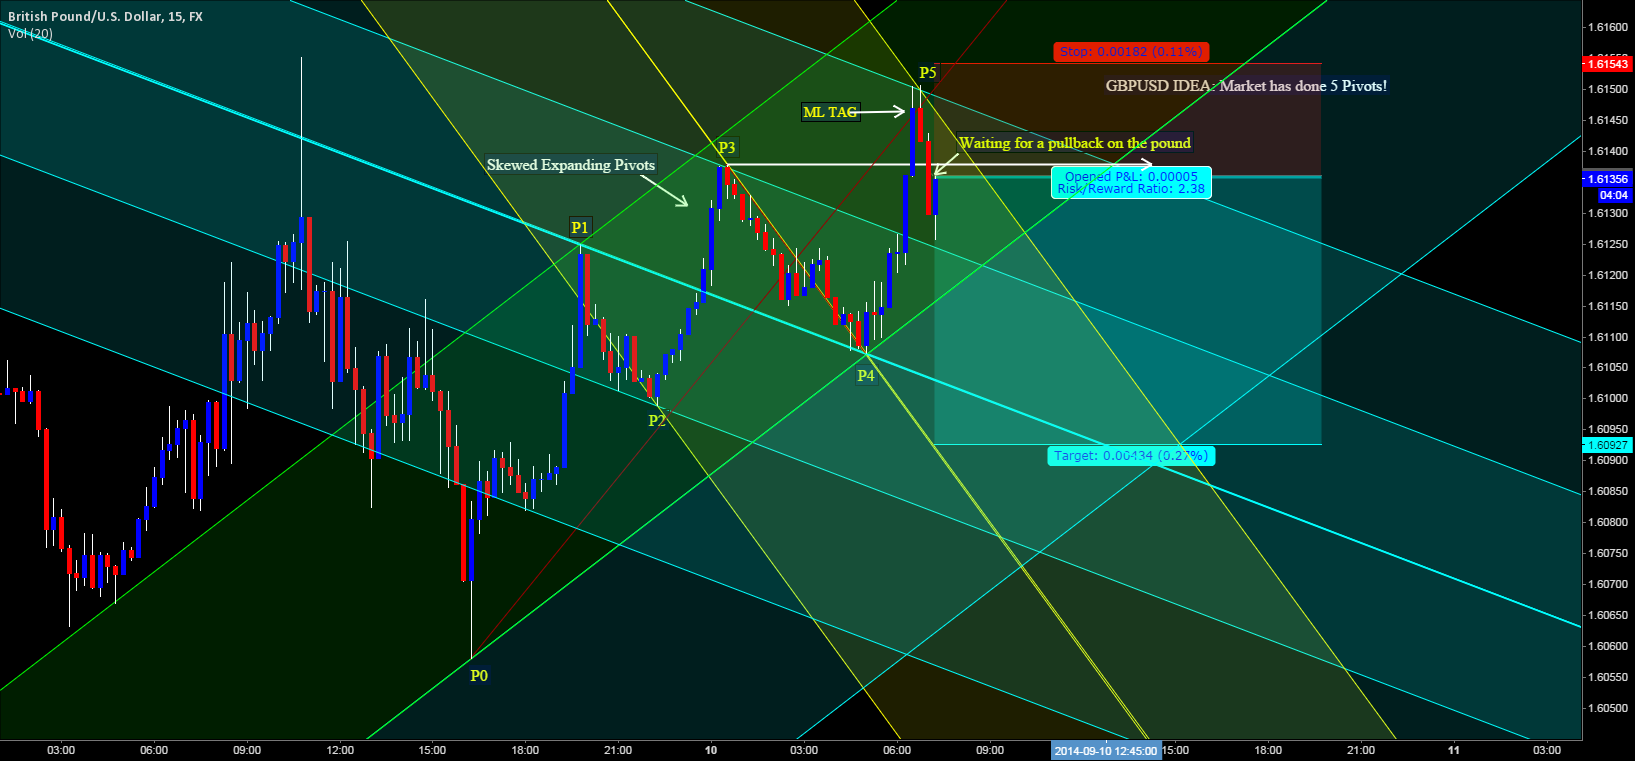 GBPUSD IDEA: Market has done 5 Pivots!